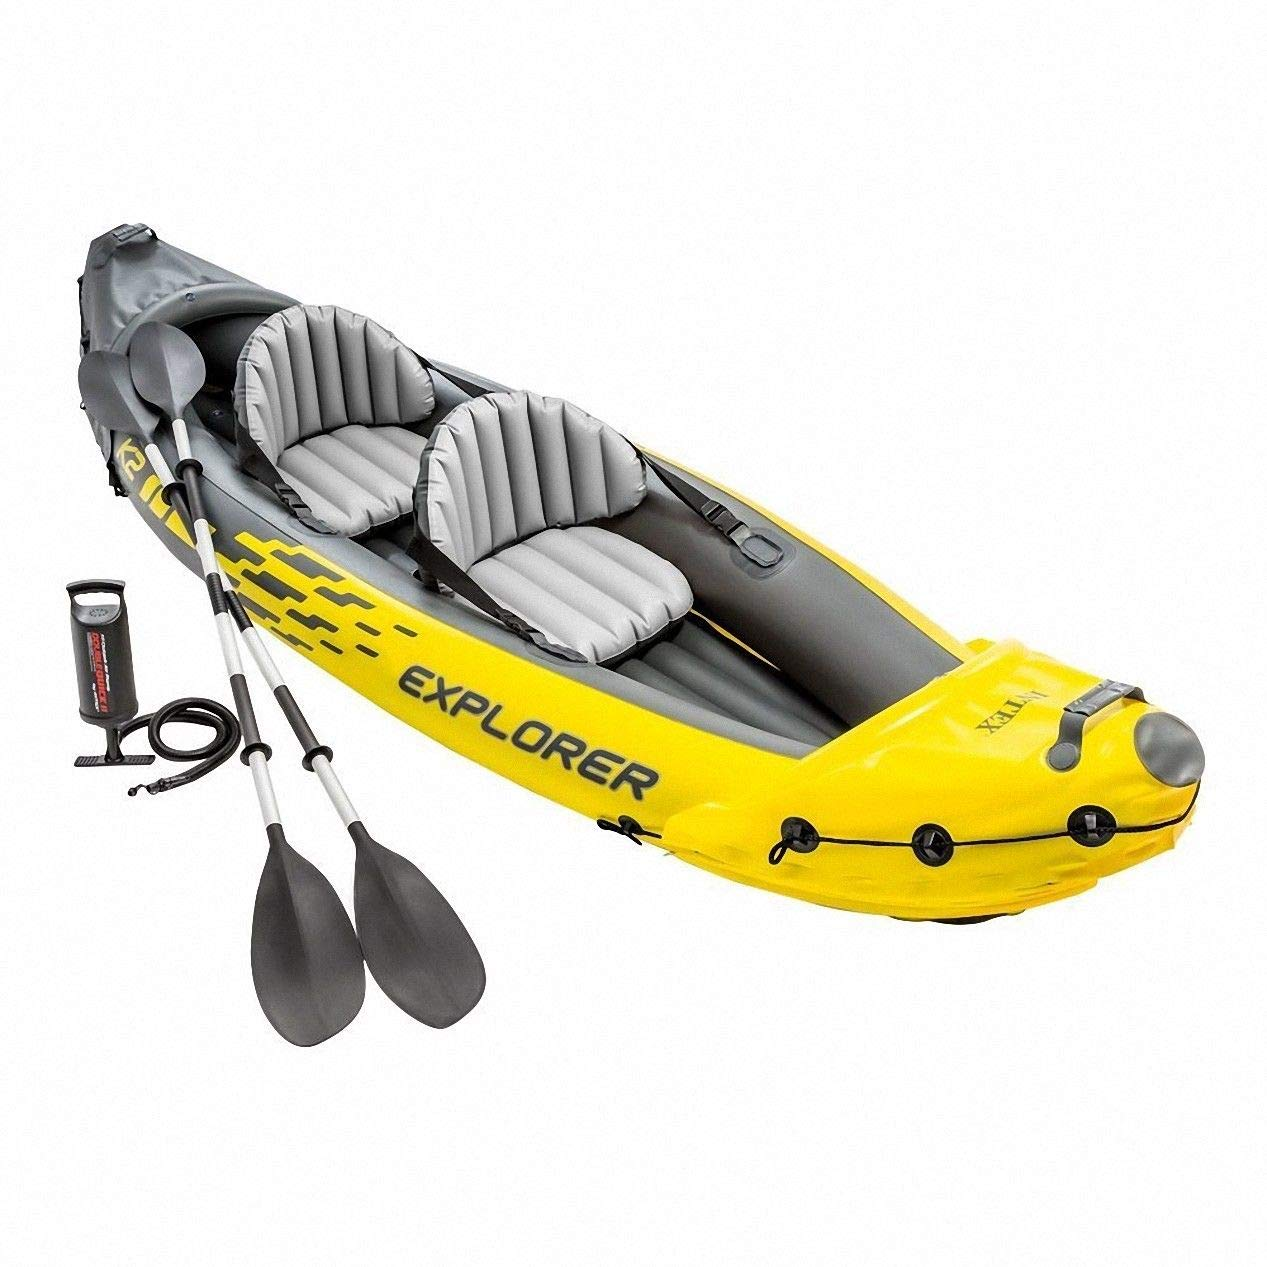 Intex Explorer K2 Yellow 2 Person Inflatable Kayak with Aluminum Oars & Air Pump by Intex